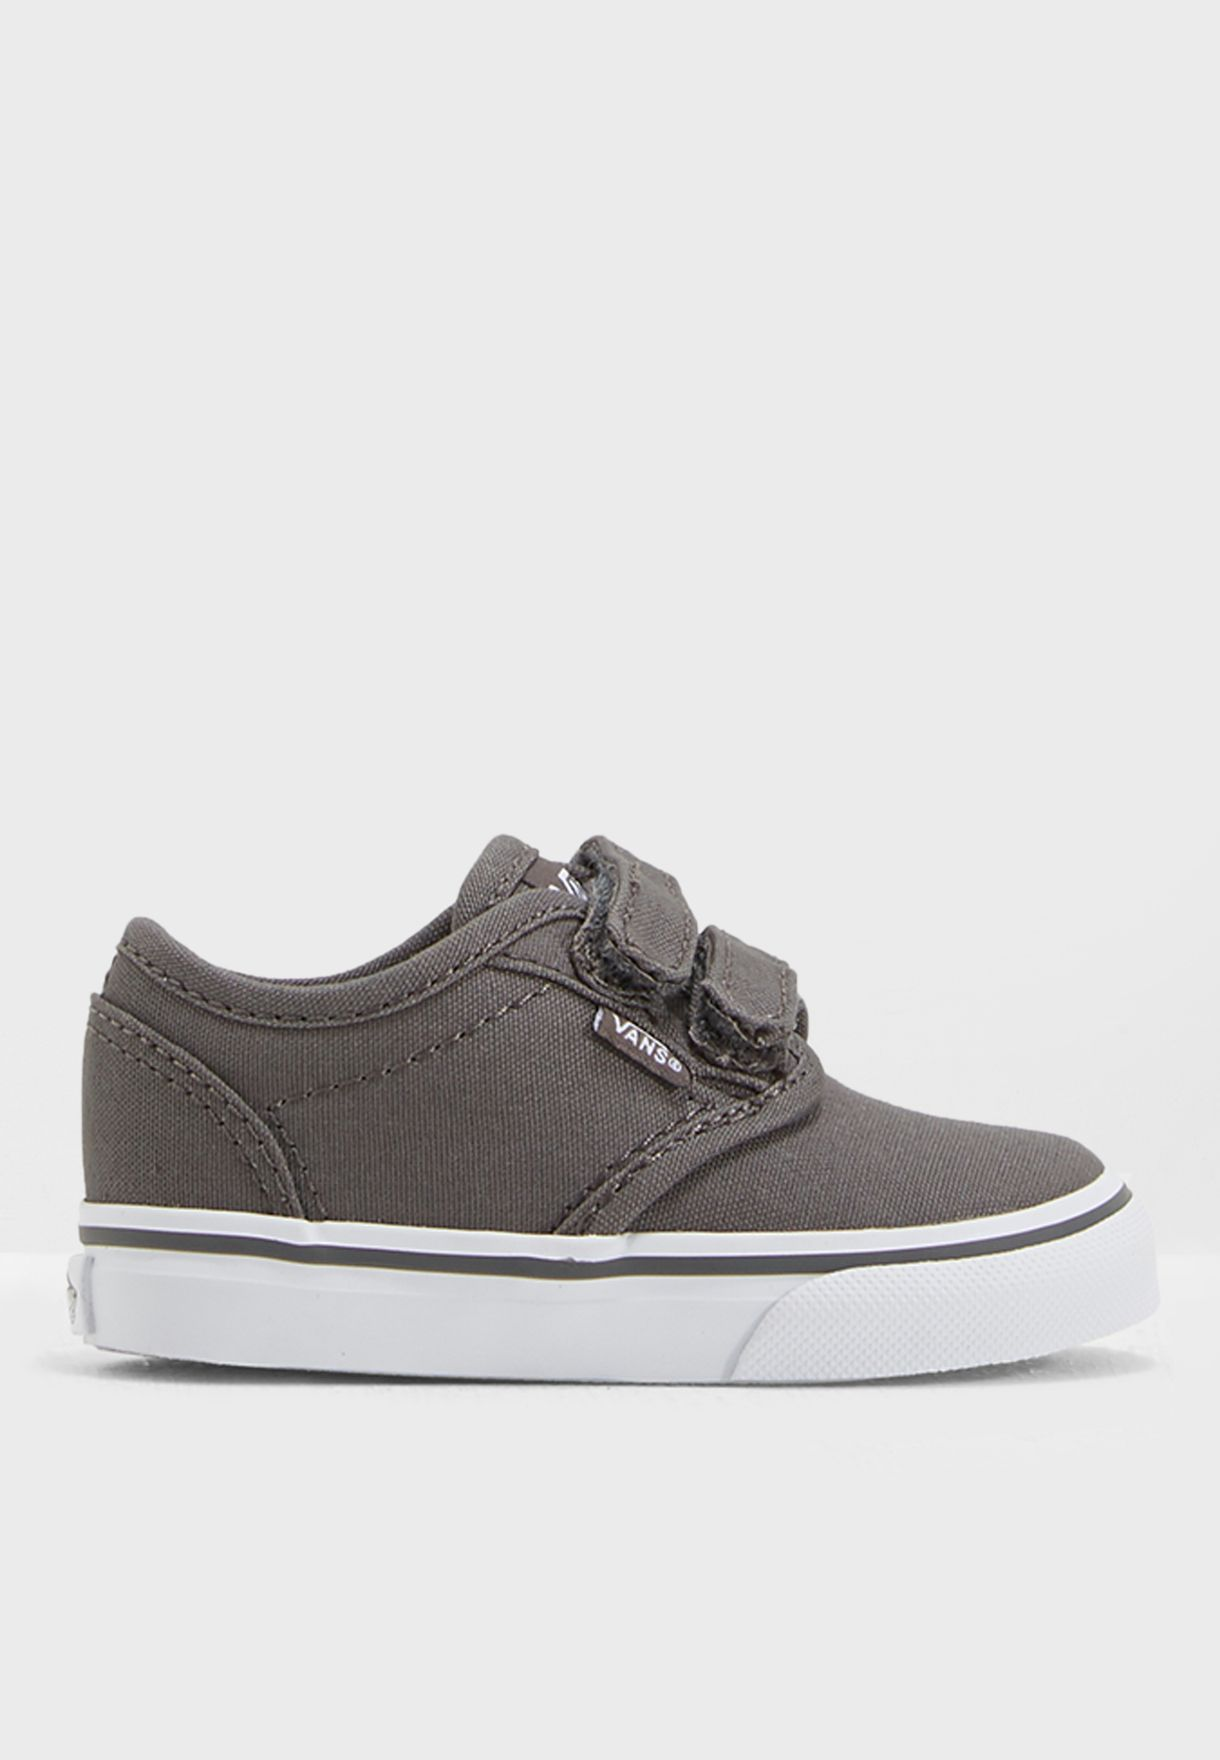 808f0782a6 Shop Vans grey Atwood V Sneakers Infant ZUR4WV for Kids in UAE ...